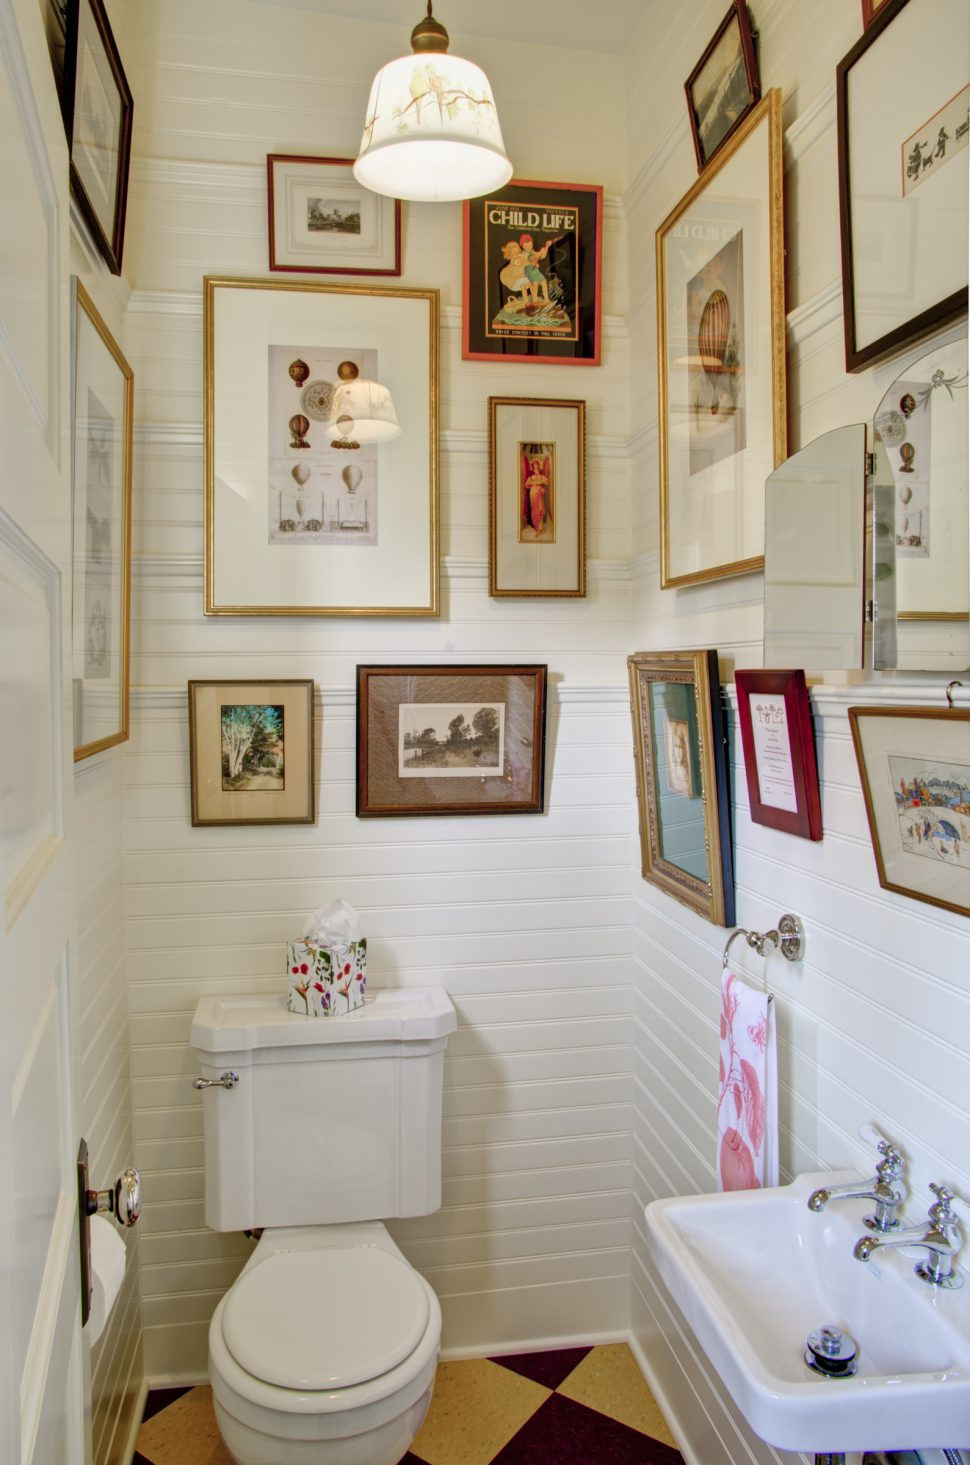 Wall Decorating Ideas for Bathrooms Beautiful Bathroom Wall Decorating Ideas From Portland Seattle Home